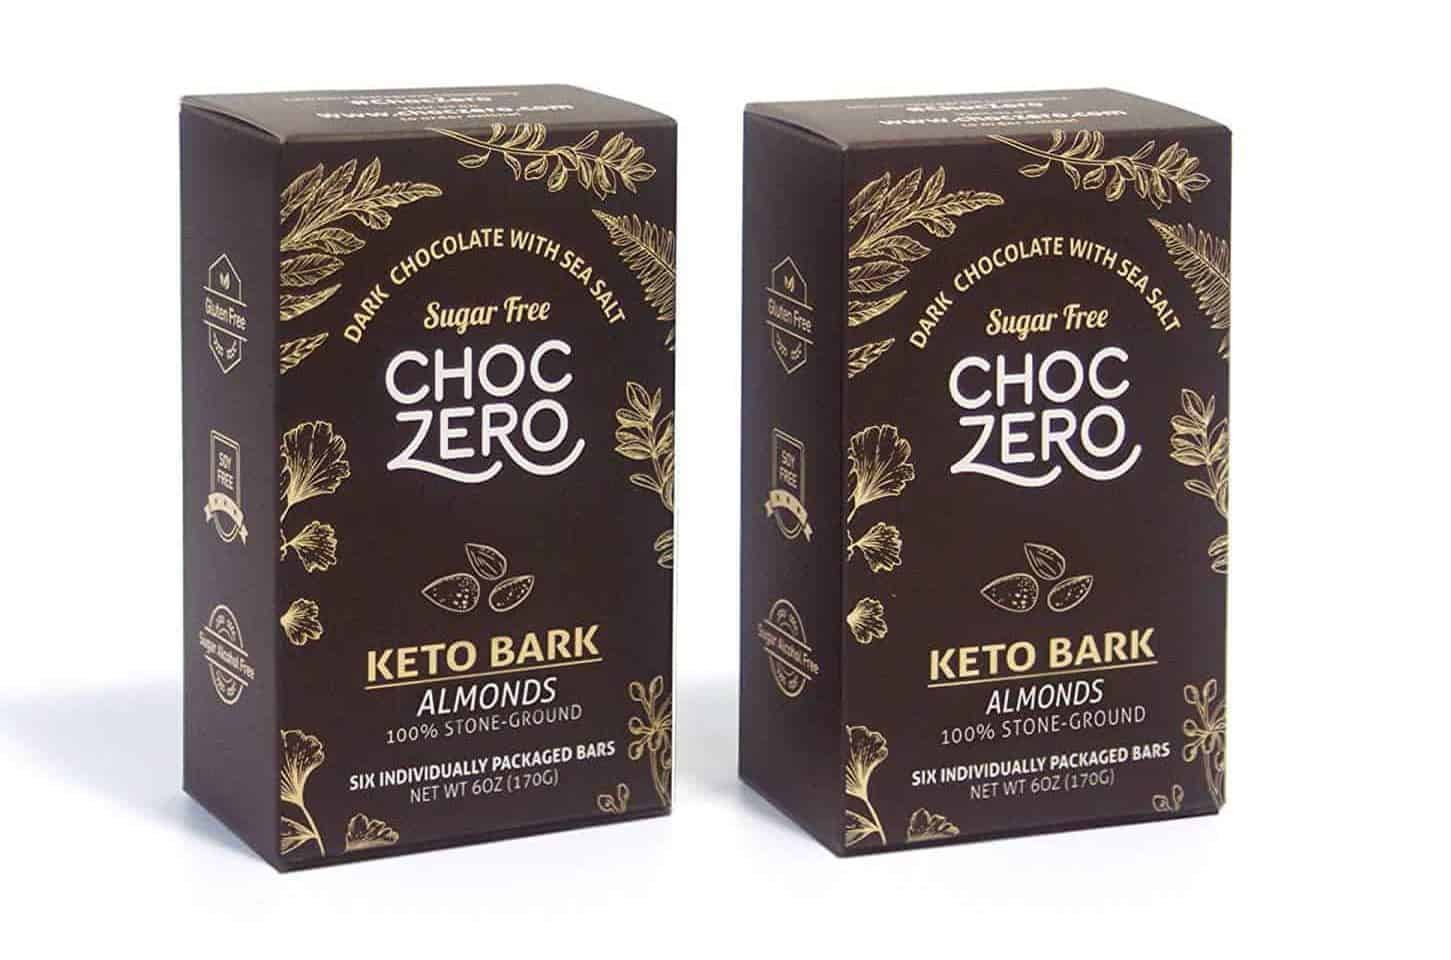 ChocZero Sugar-Free Chocolate